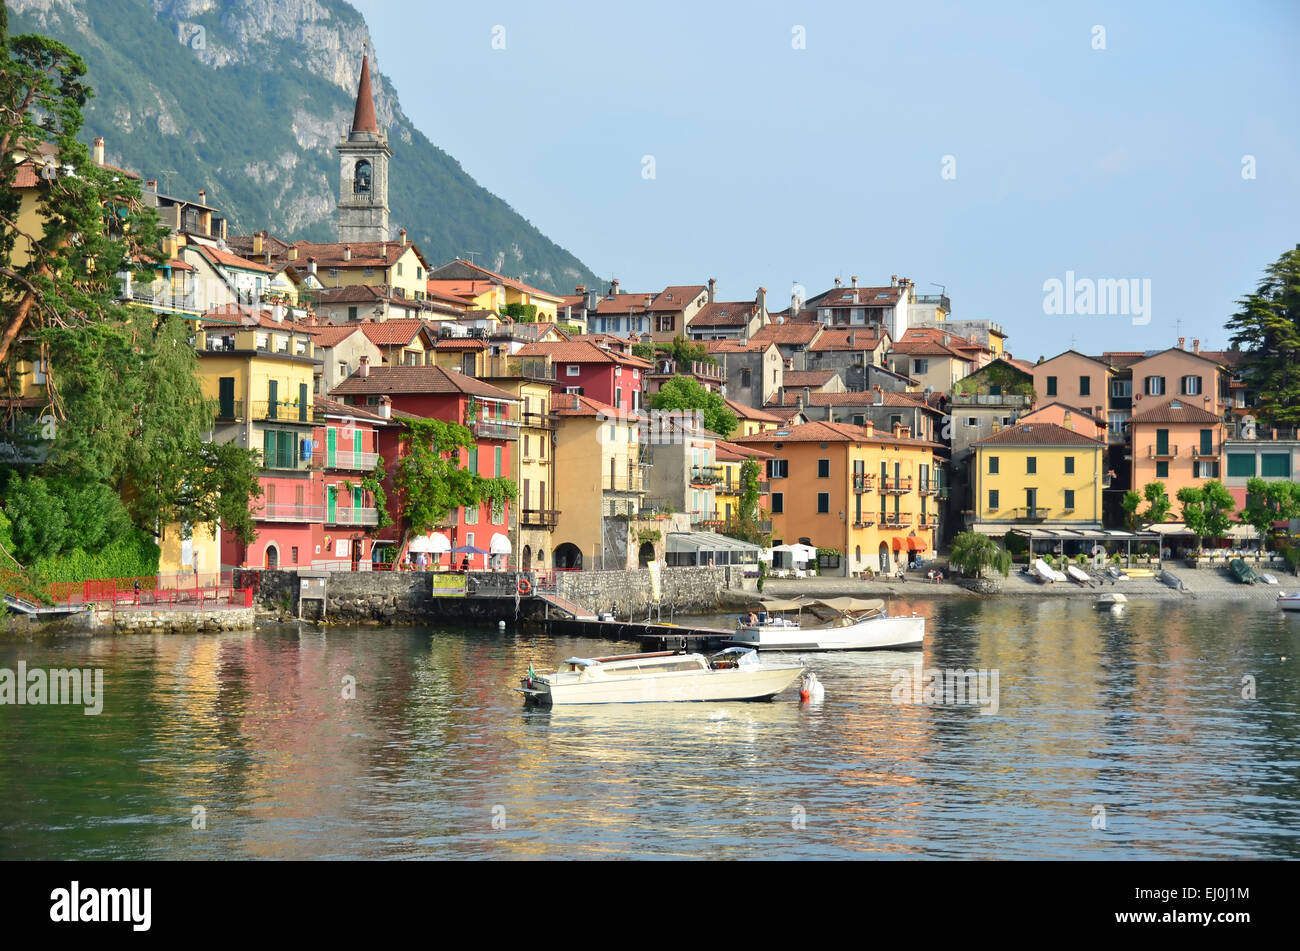 The pretty lake front village of Varenna on Lake Como in northern Italy - Stock Image